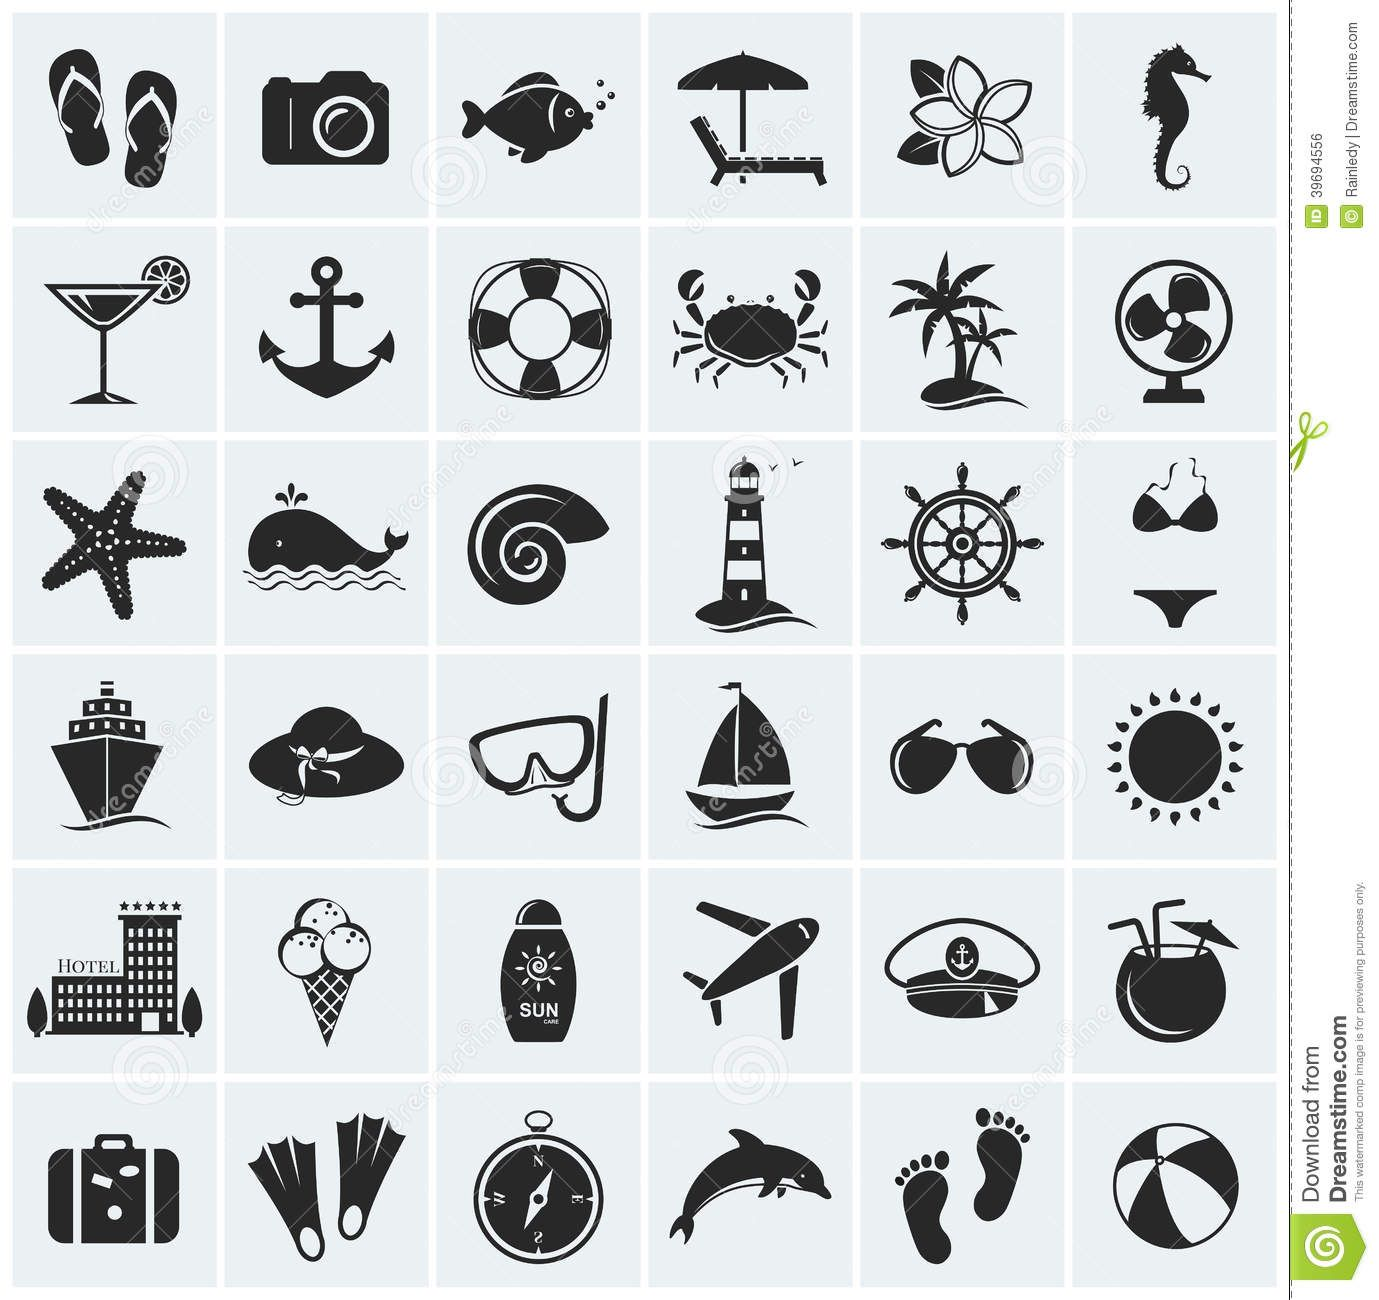 Set of sea and beach icons vector illustration stock vector set of sea and beach icons vector illustration stock vector image 39694556 biocorpaavc Choice Image